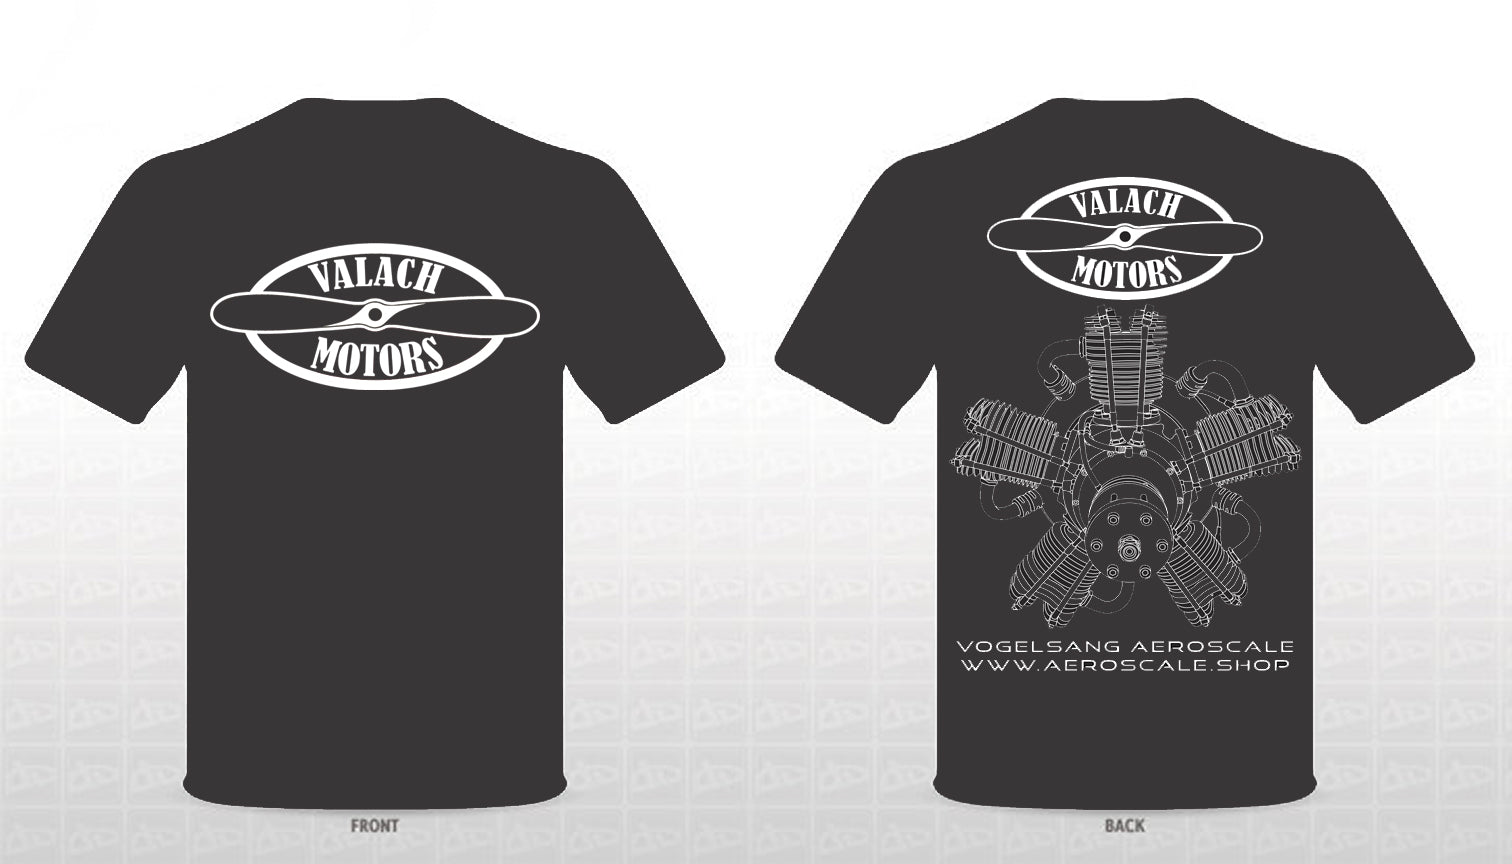 Valach Motors T-Shirt